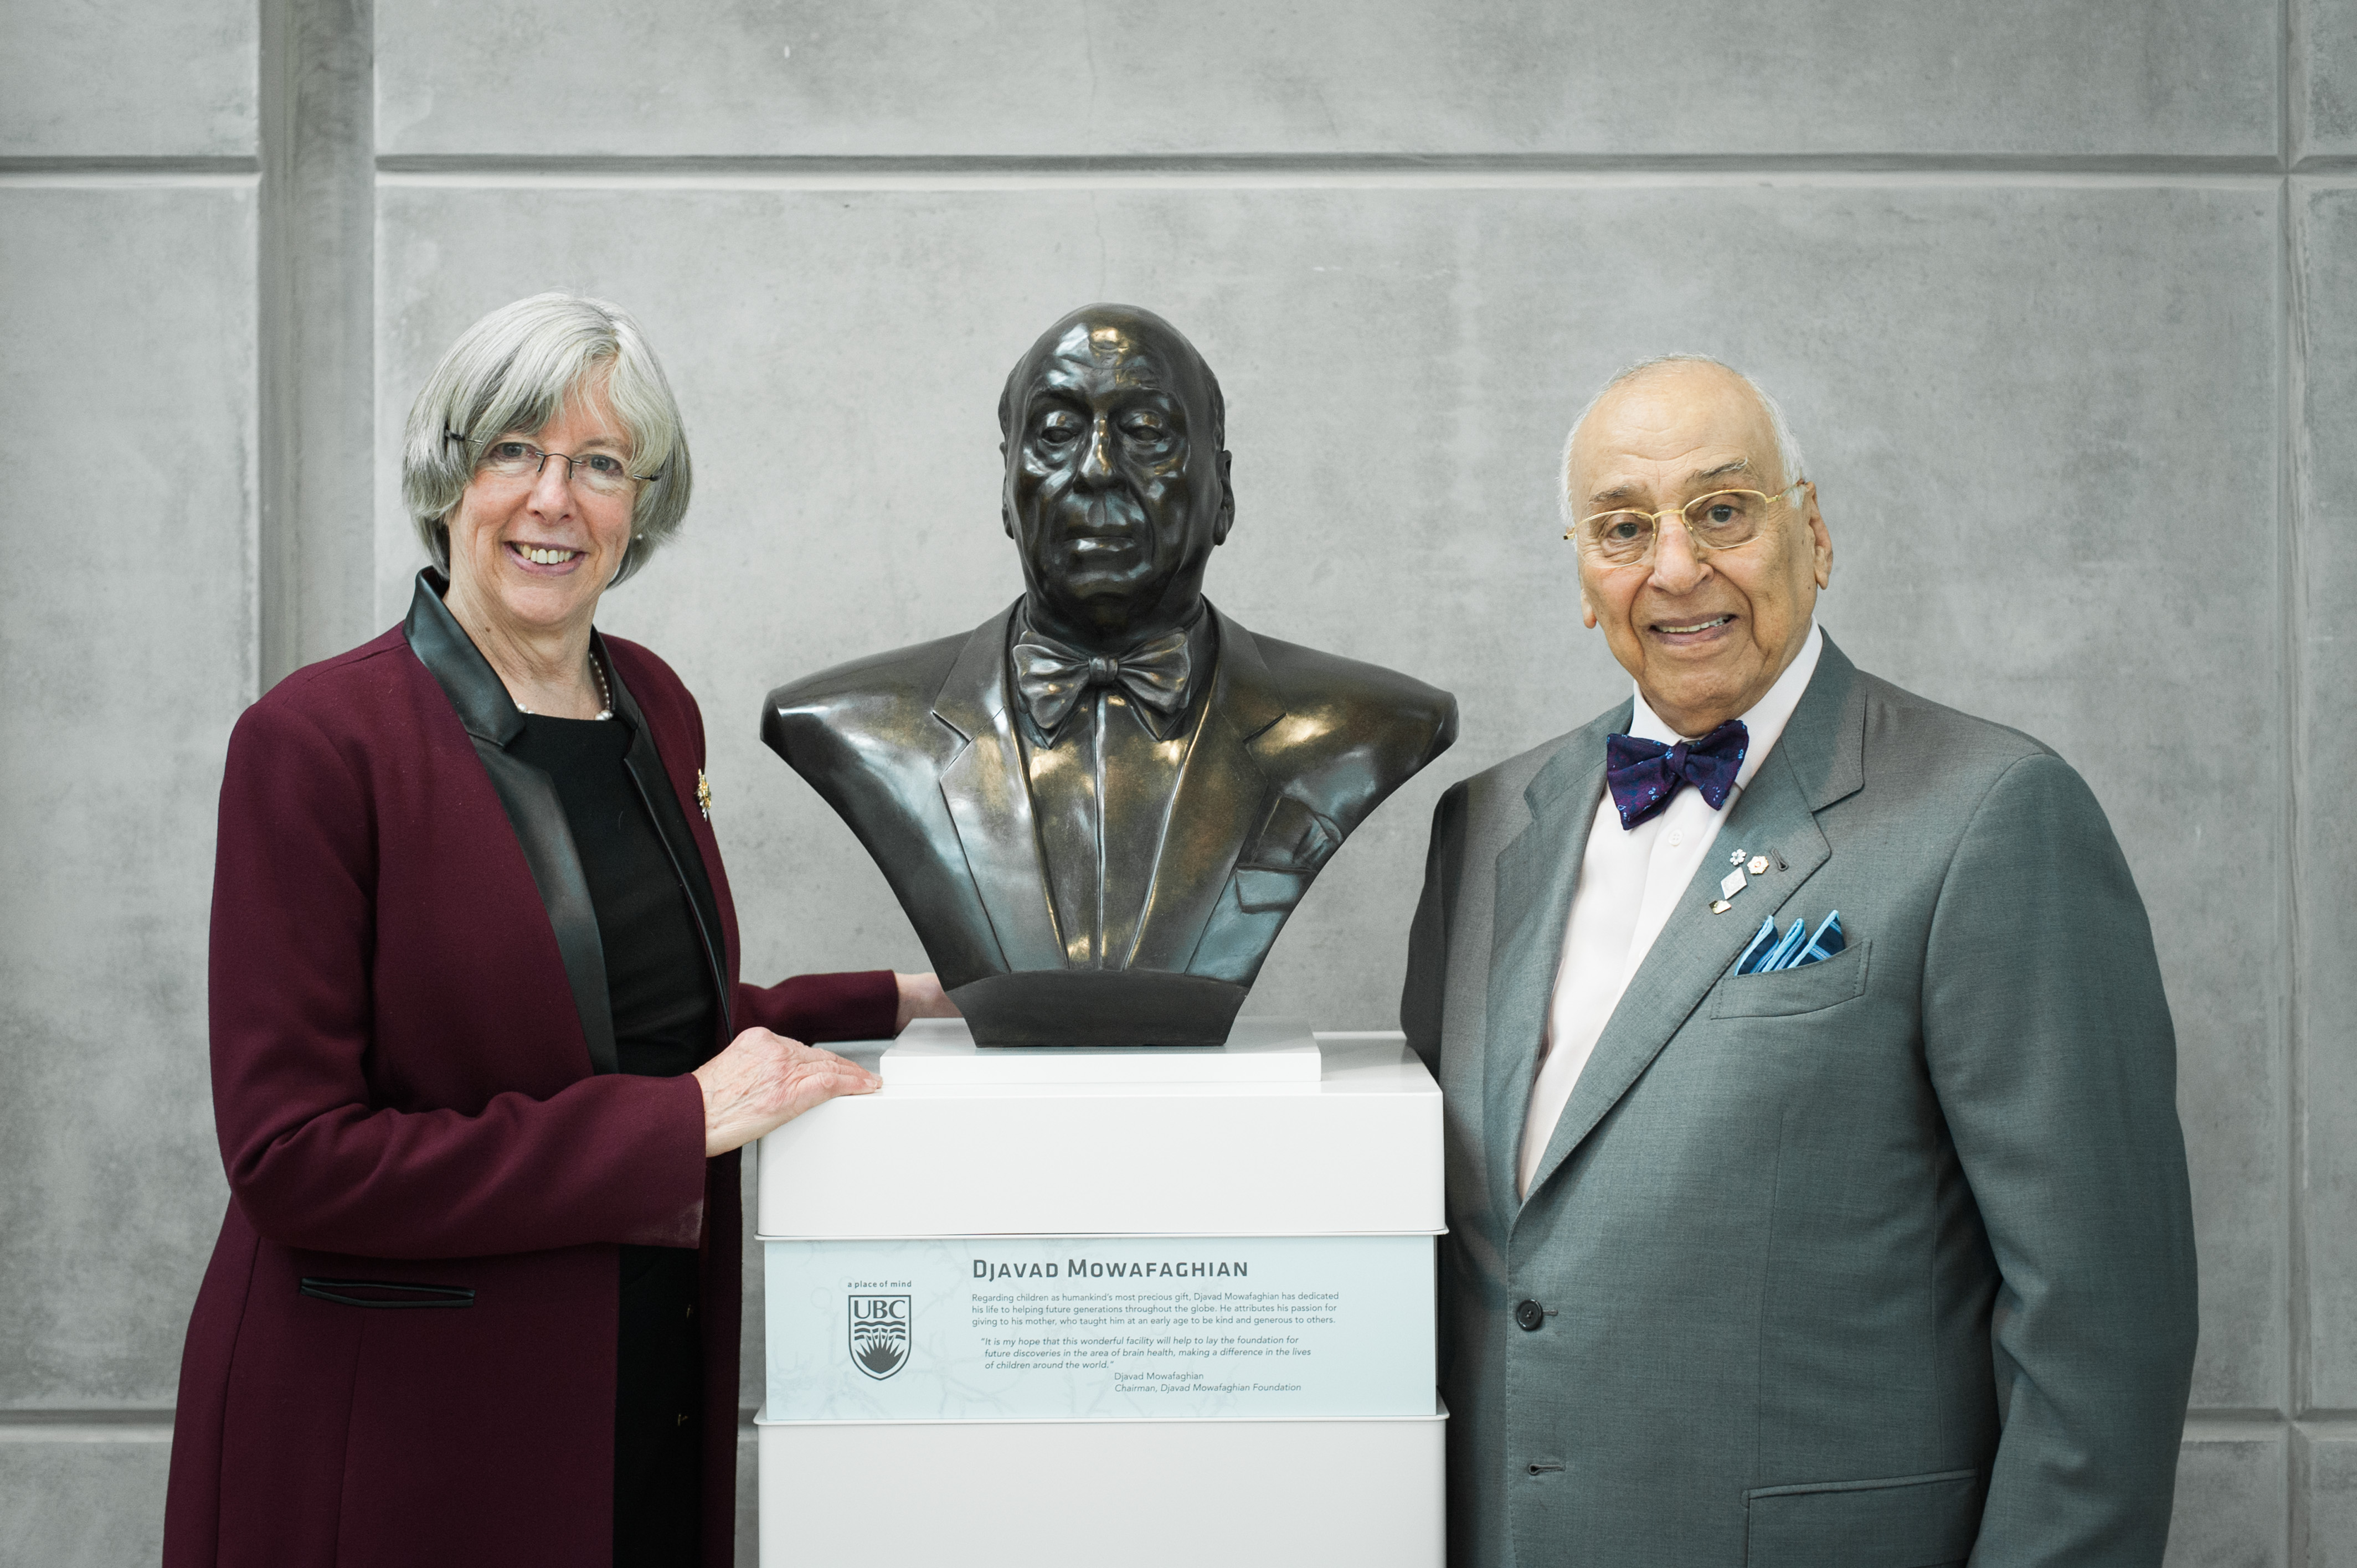 At the official opening of the Djavad Mowafaghian Centre for Brain Health  The Honourable Judith Guichon, Lieutenant Governor of British Columbia, with Djavad Mowafaghian. Photo: Martin Dee